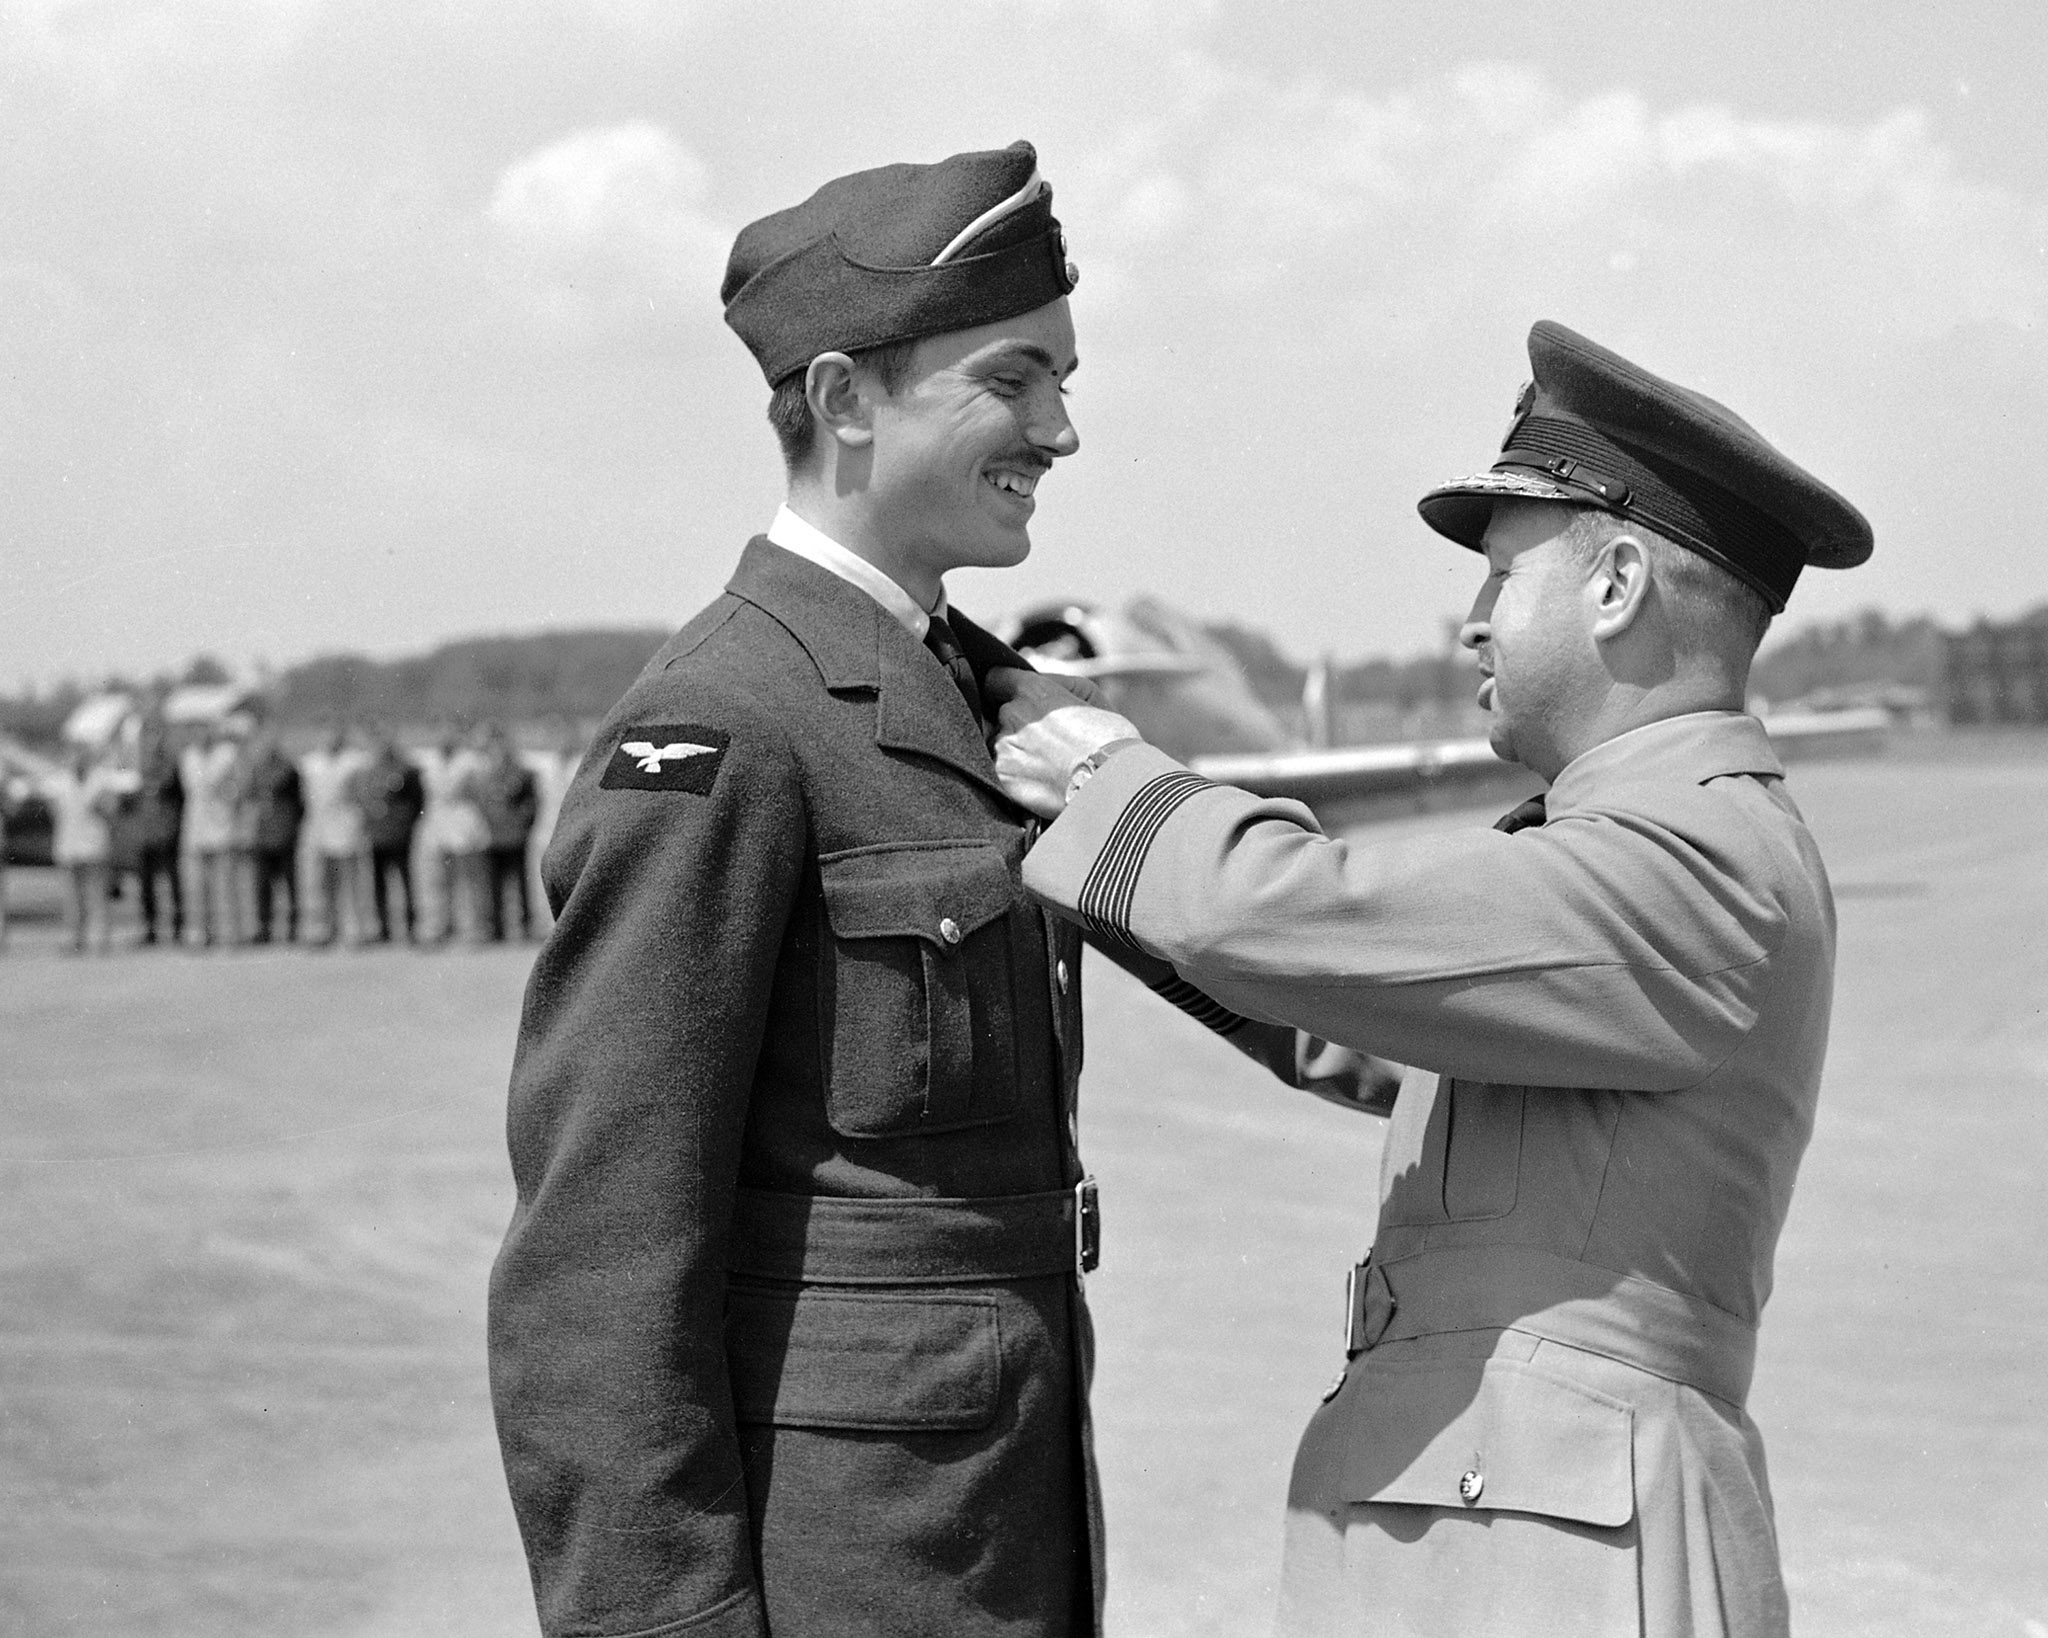 Group Captain W.A. Curtis (right) presents wings to Pilot Officer John Gillespie Magee, author of High Flight, in June 1941, at RCAF Station Uplands, near Ottawa, Ontario.